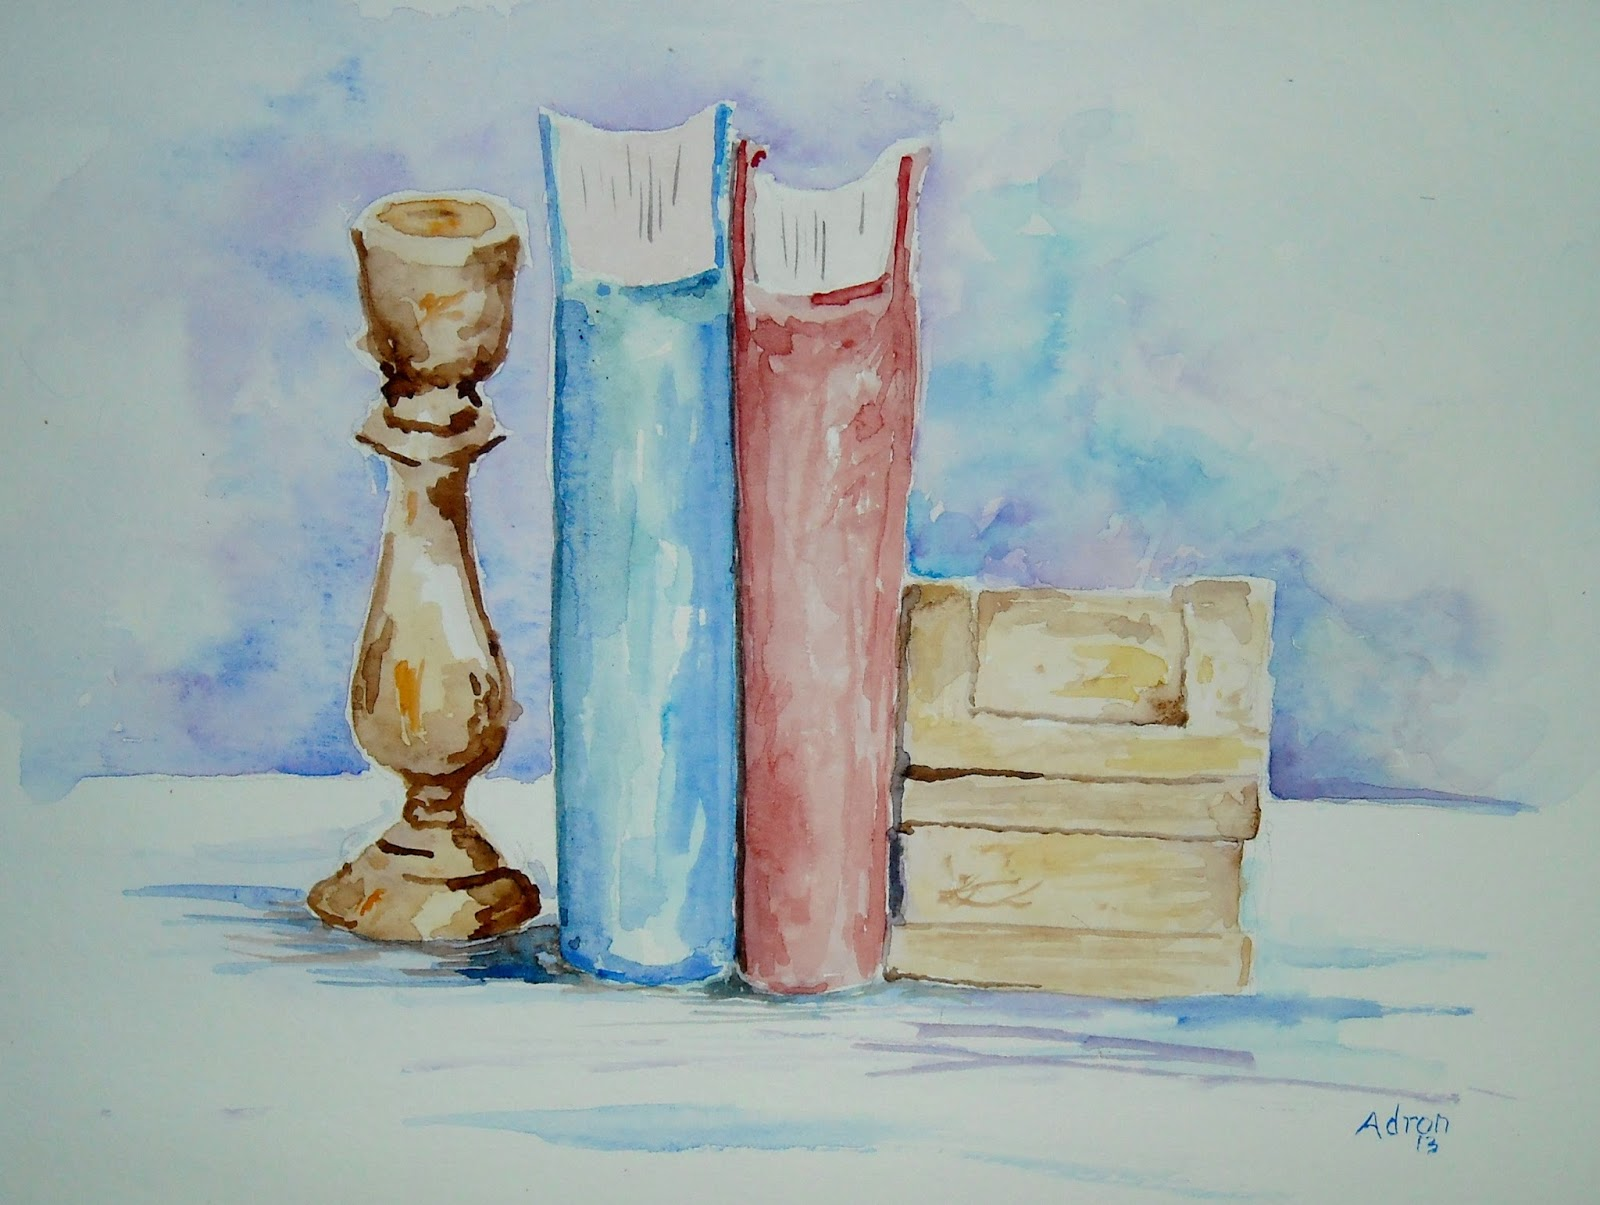 Artist Adron Simple Watercolor Still Life With Four Objects